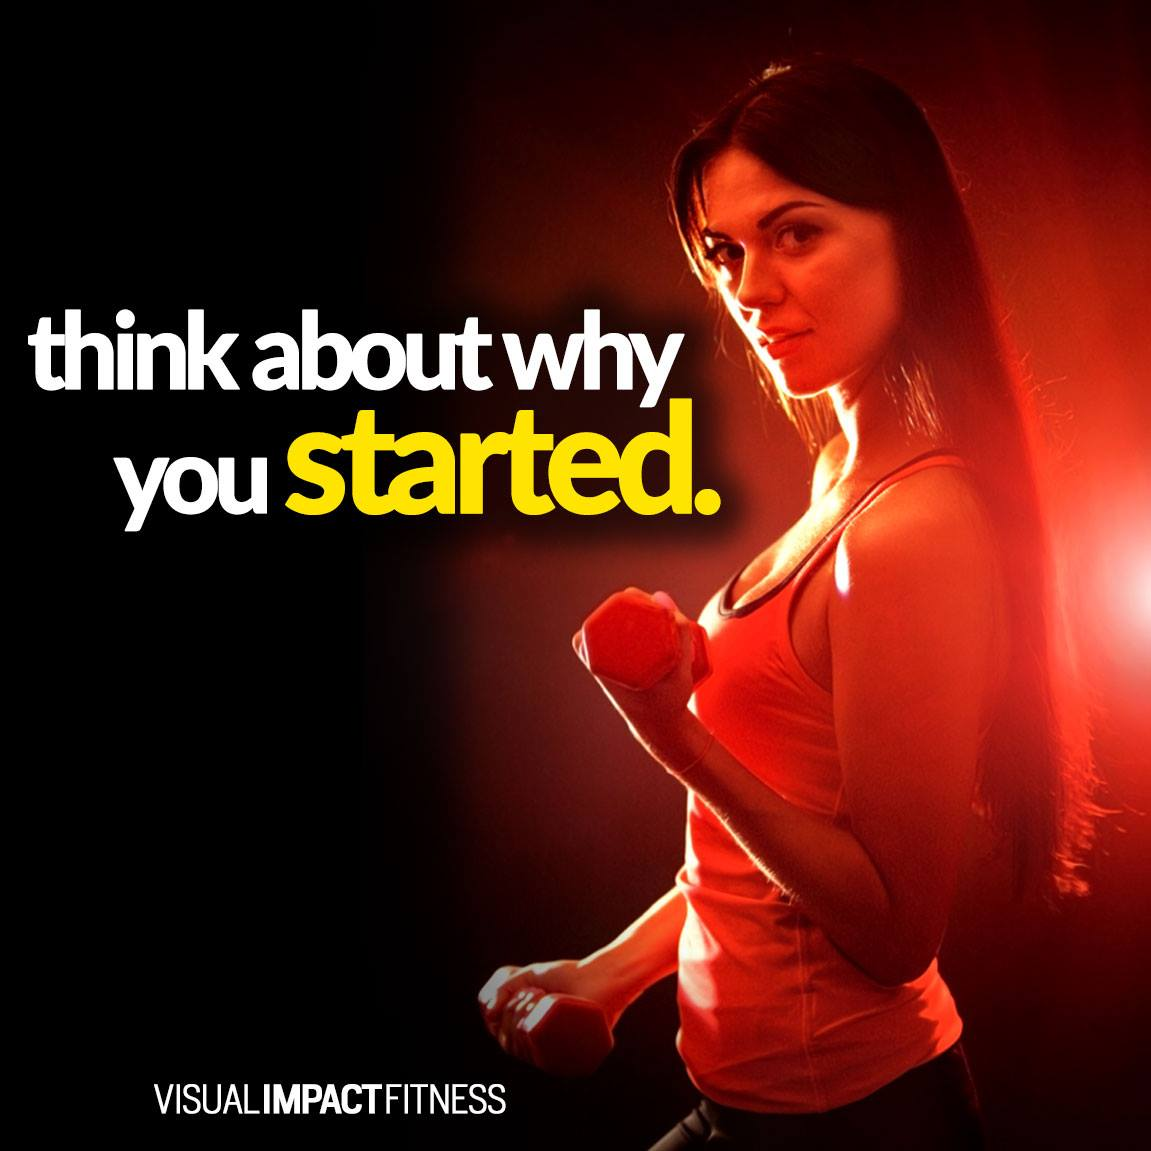 Think about why you started.